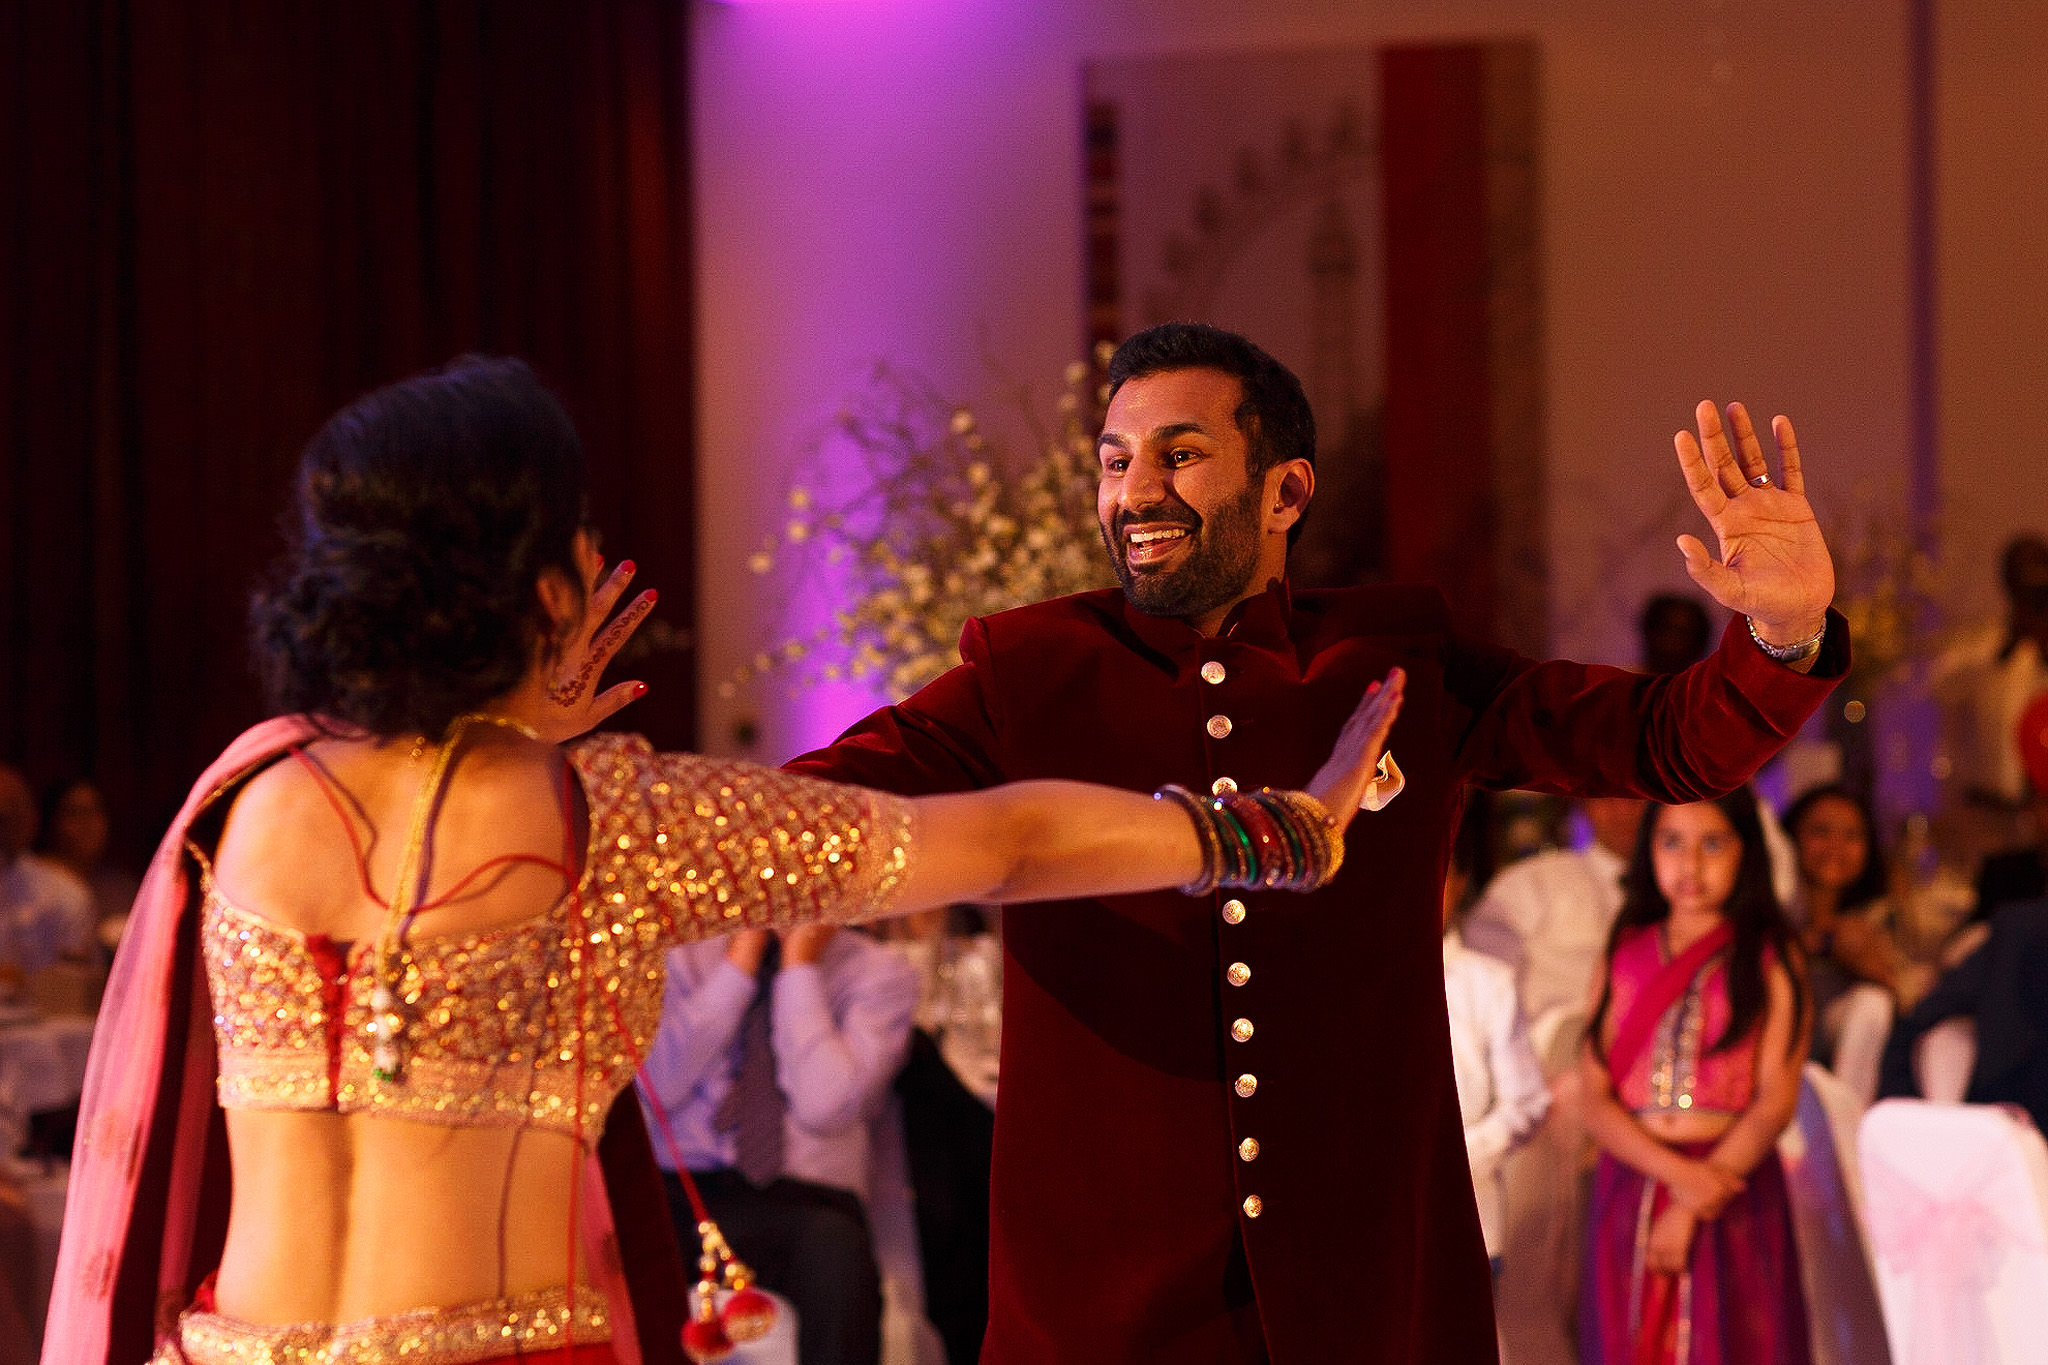 Bride and groom dancing together at their Indian wedding reception